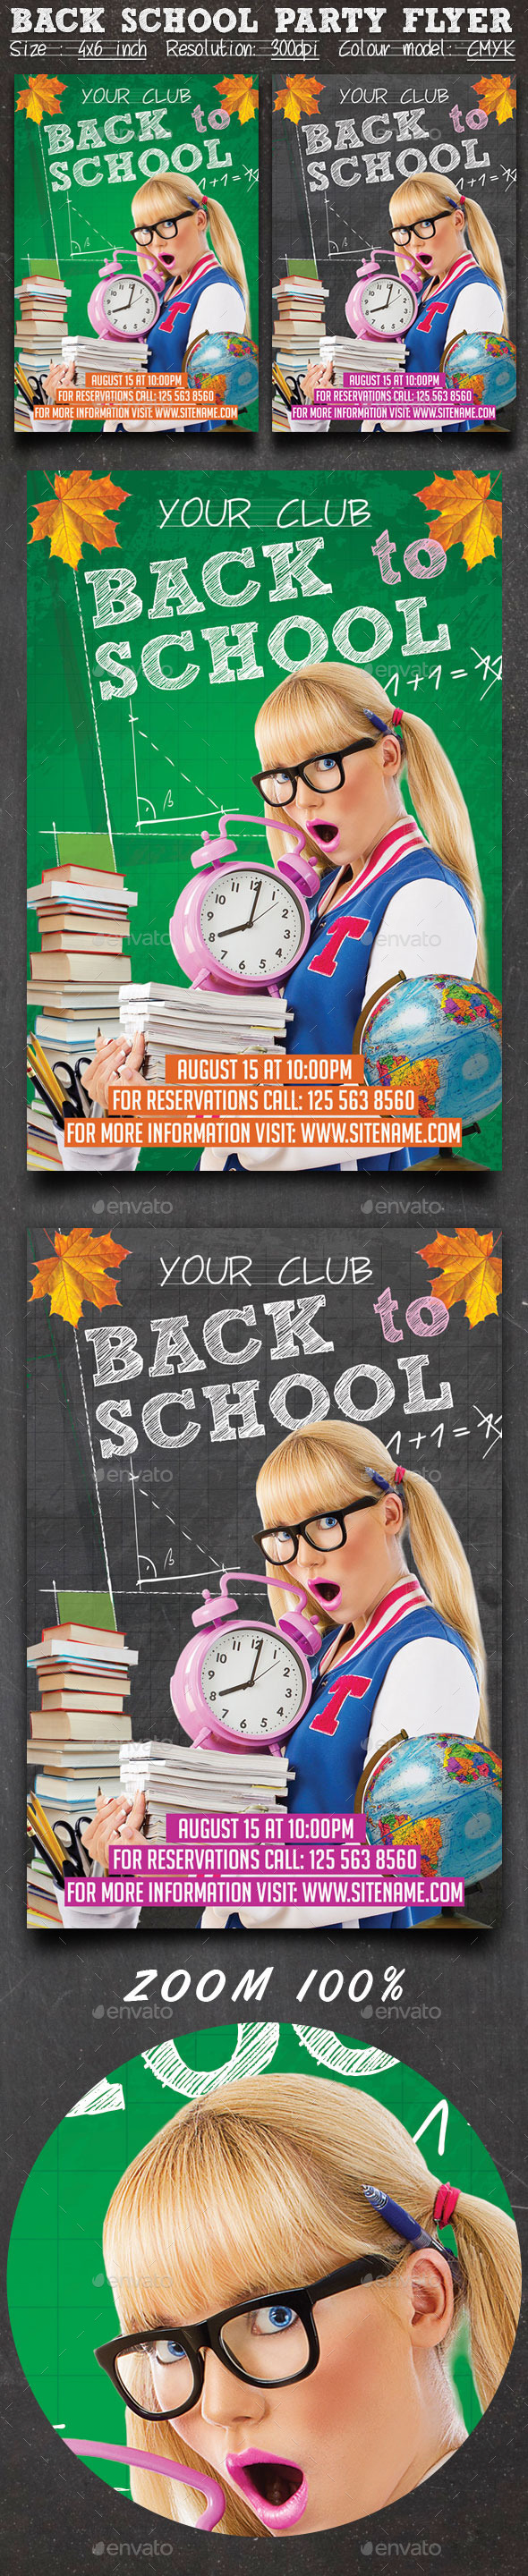 Back School Party Flyer - Clubs & Parties Events